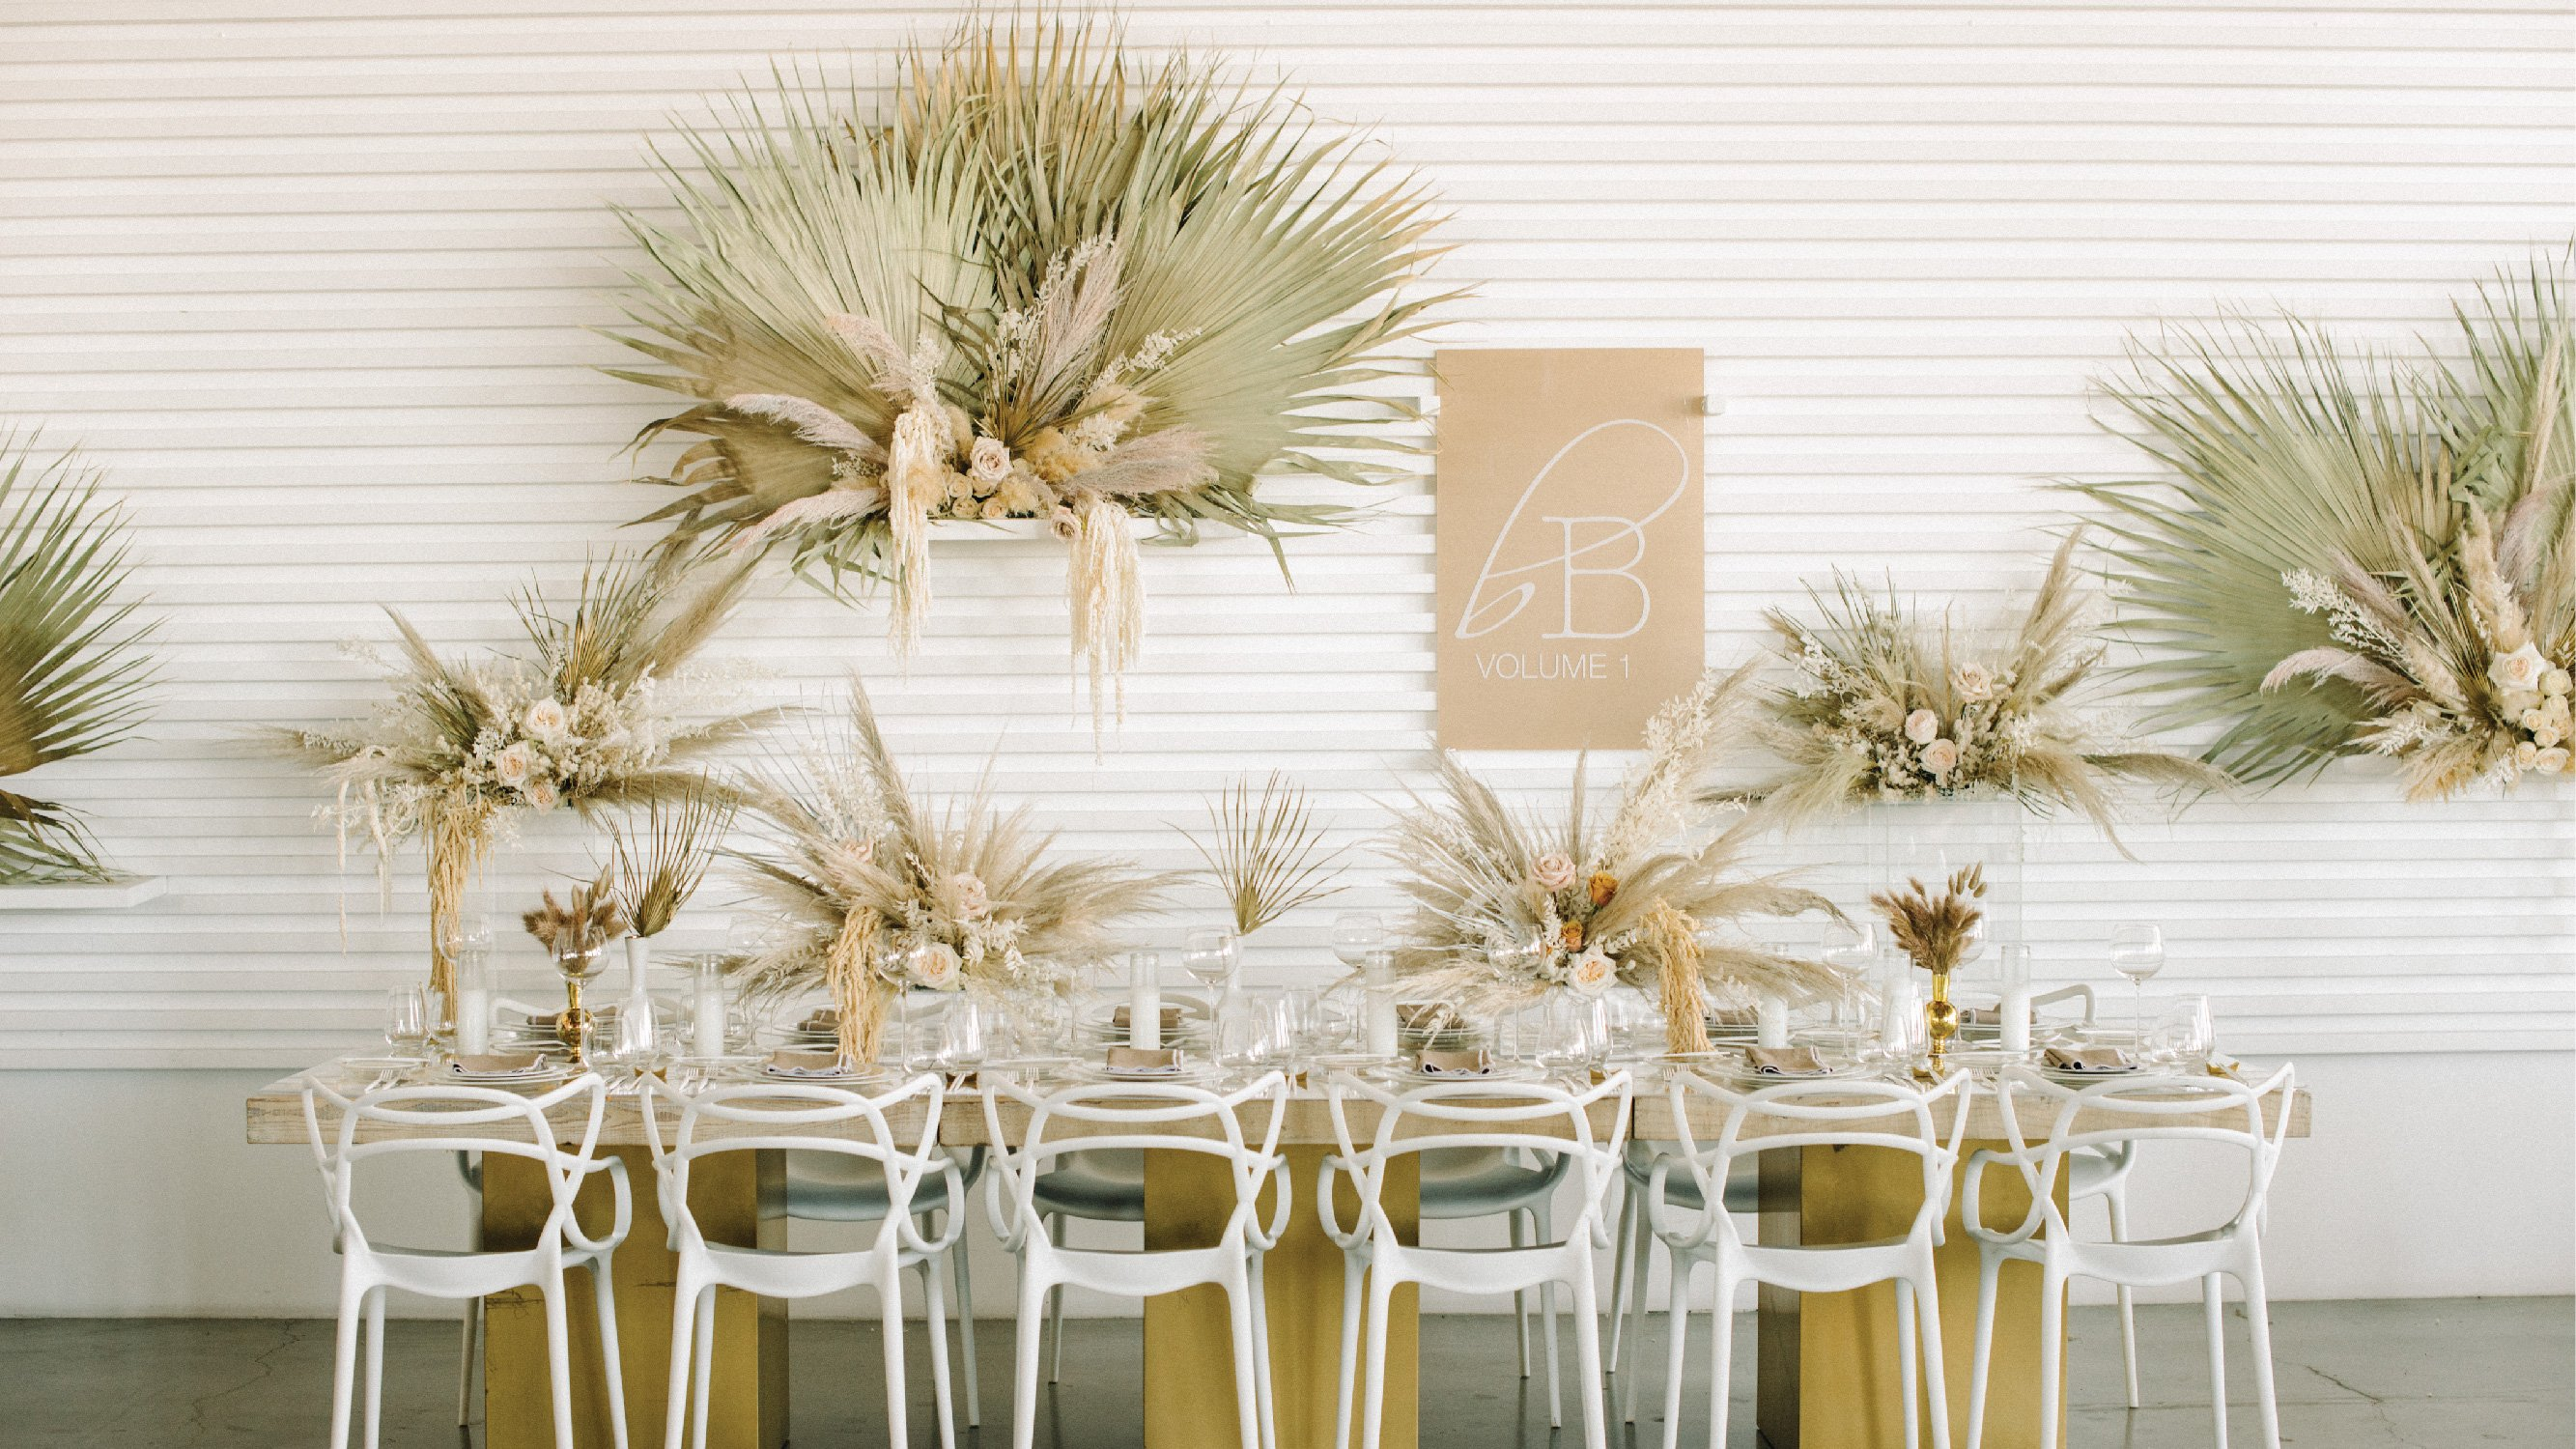 Tablescape for borrowed BLU event featuring Mayesh Wholesale products.